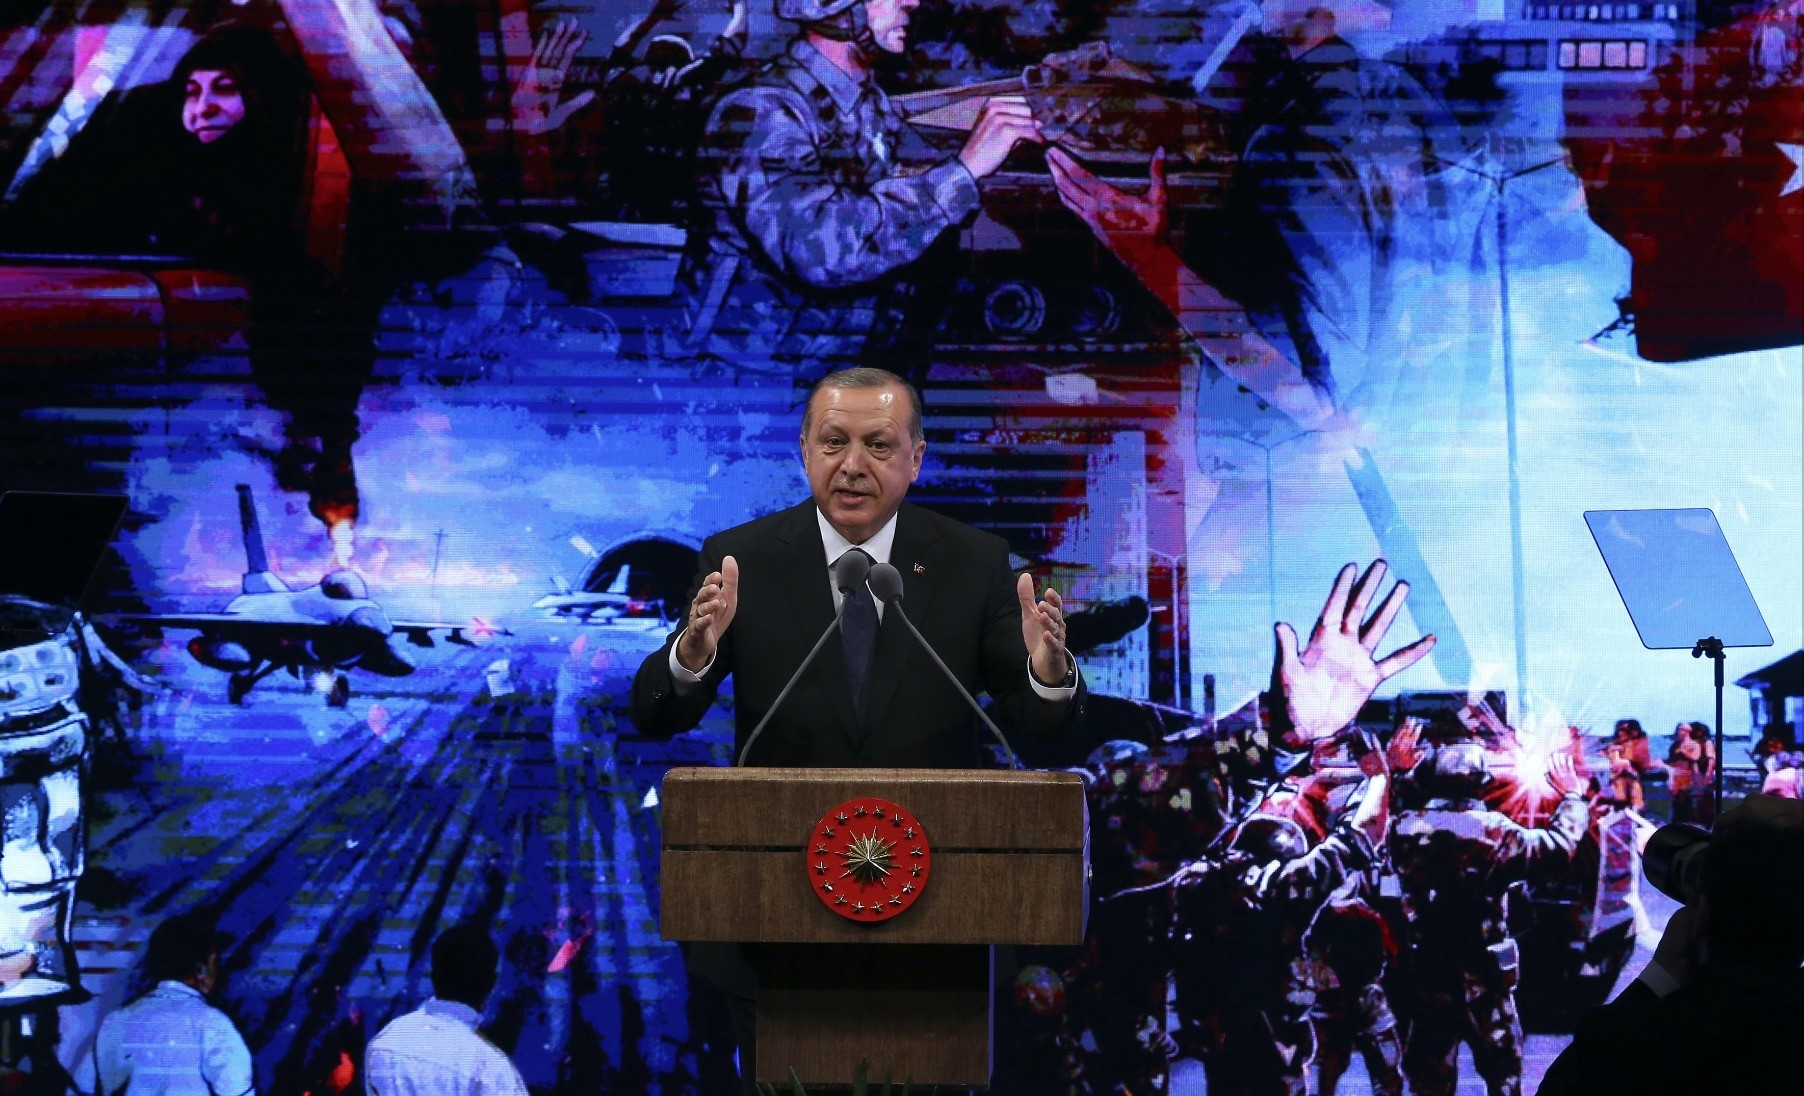 Erdou011fan said the West takes a stance against Turkey when it comes to freedoms after some ministers were banned from attending July 15 events across Europe.